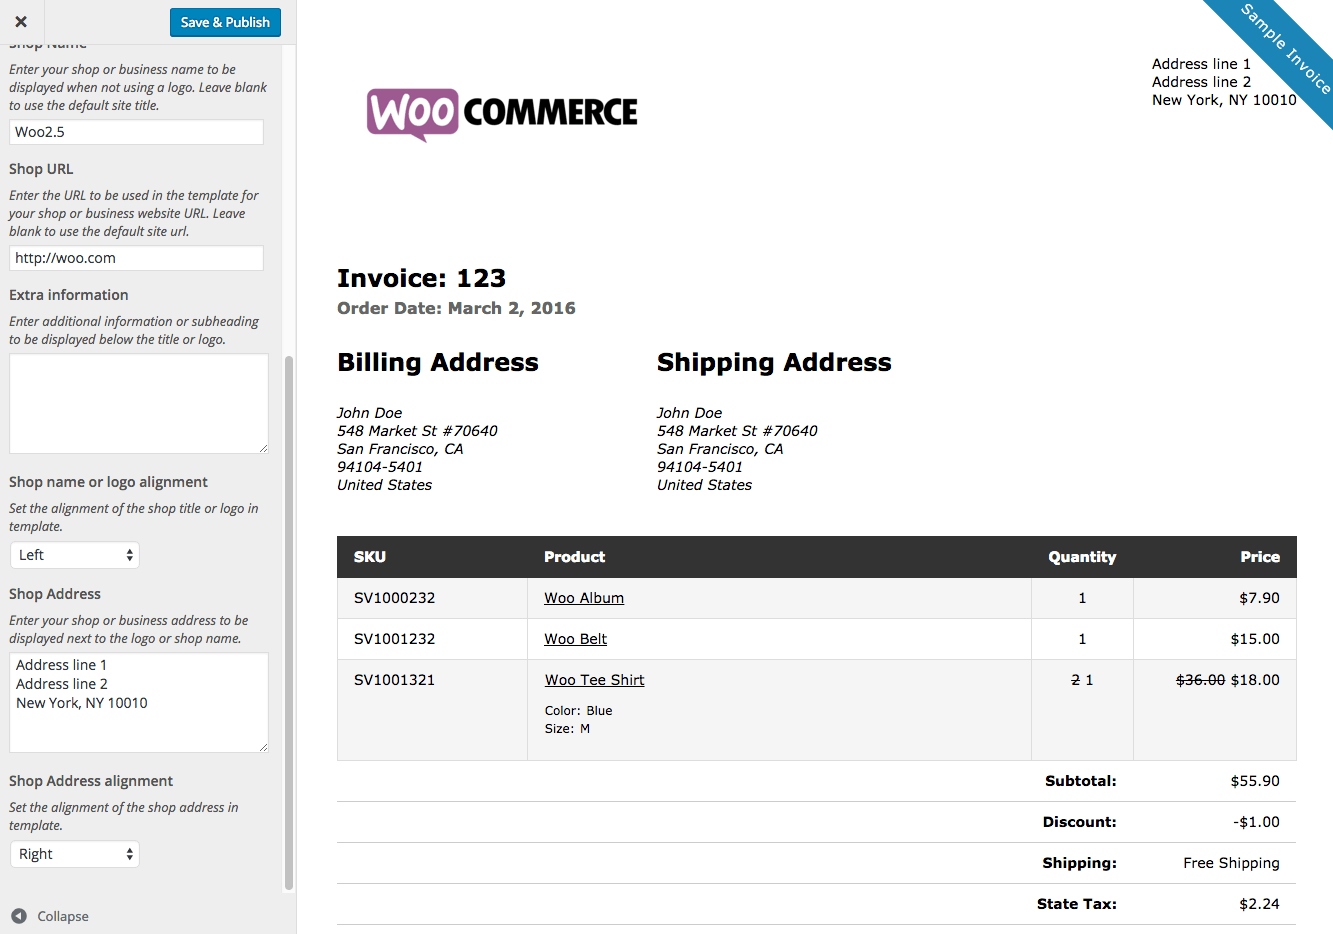 Hius  Outstanding Print Invoices Amp Packing Lists  Woocommerce With Marvelous Woocommerce Print Invoices  Packing Lists Customizer With Astounding Third Party Invoice Also Tax Invoice Book In Addition How To Do A Tax Invoice And Make Invoice In Excel As Well As Invoice Receipt Template Free Additionally Revised Proforma Invoice From Woocommercecom With Hius  Marvelous Print Invoices Amp Packing Lists  Woocommerce With Astounding Woocommerce Print Invoices  Packing Lists Customizer And Outstanding Third Party Invoice Also Tax Invoice Book In Addition How To Do A Tax Invoice From Woocommercecom